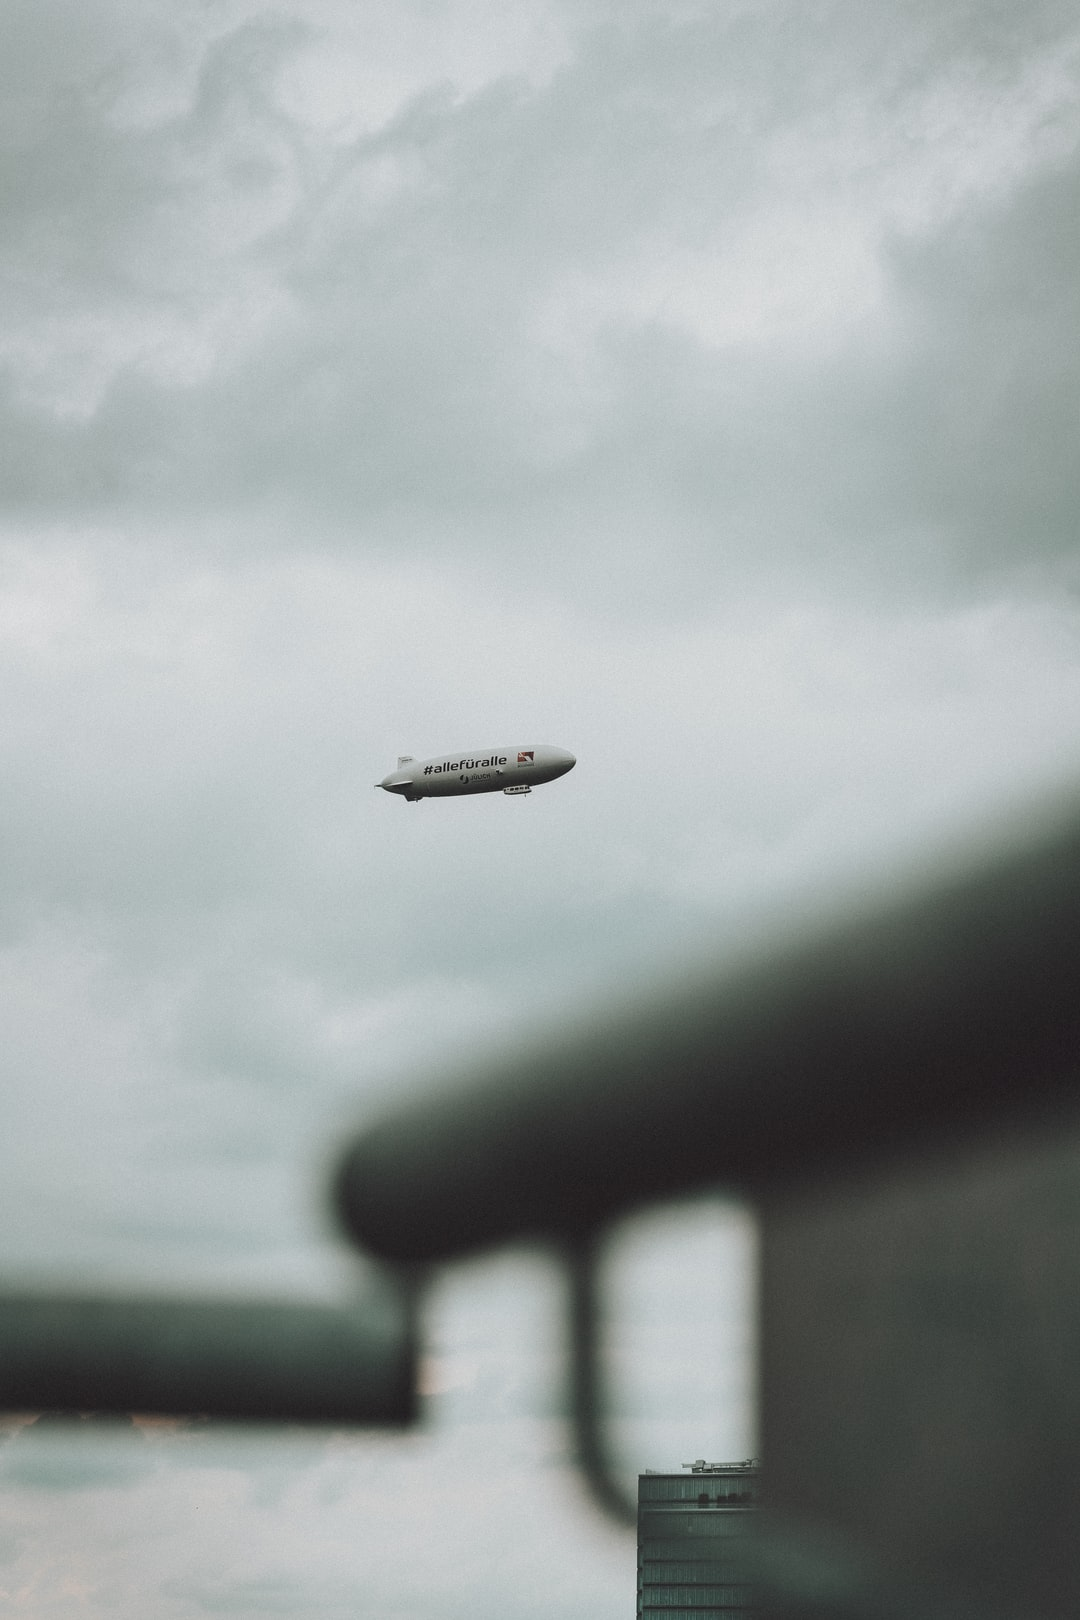 A zeppelin just flyin' over Cologne